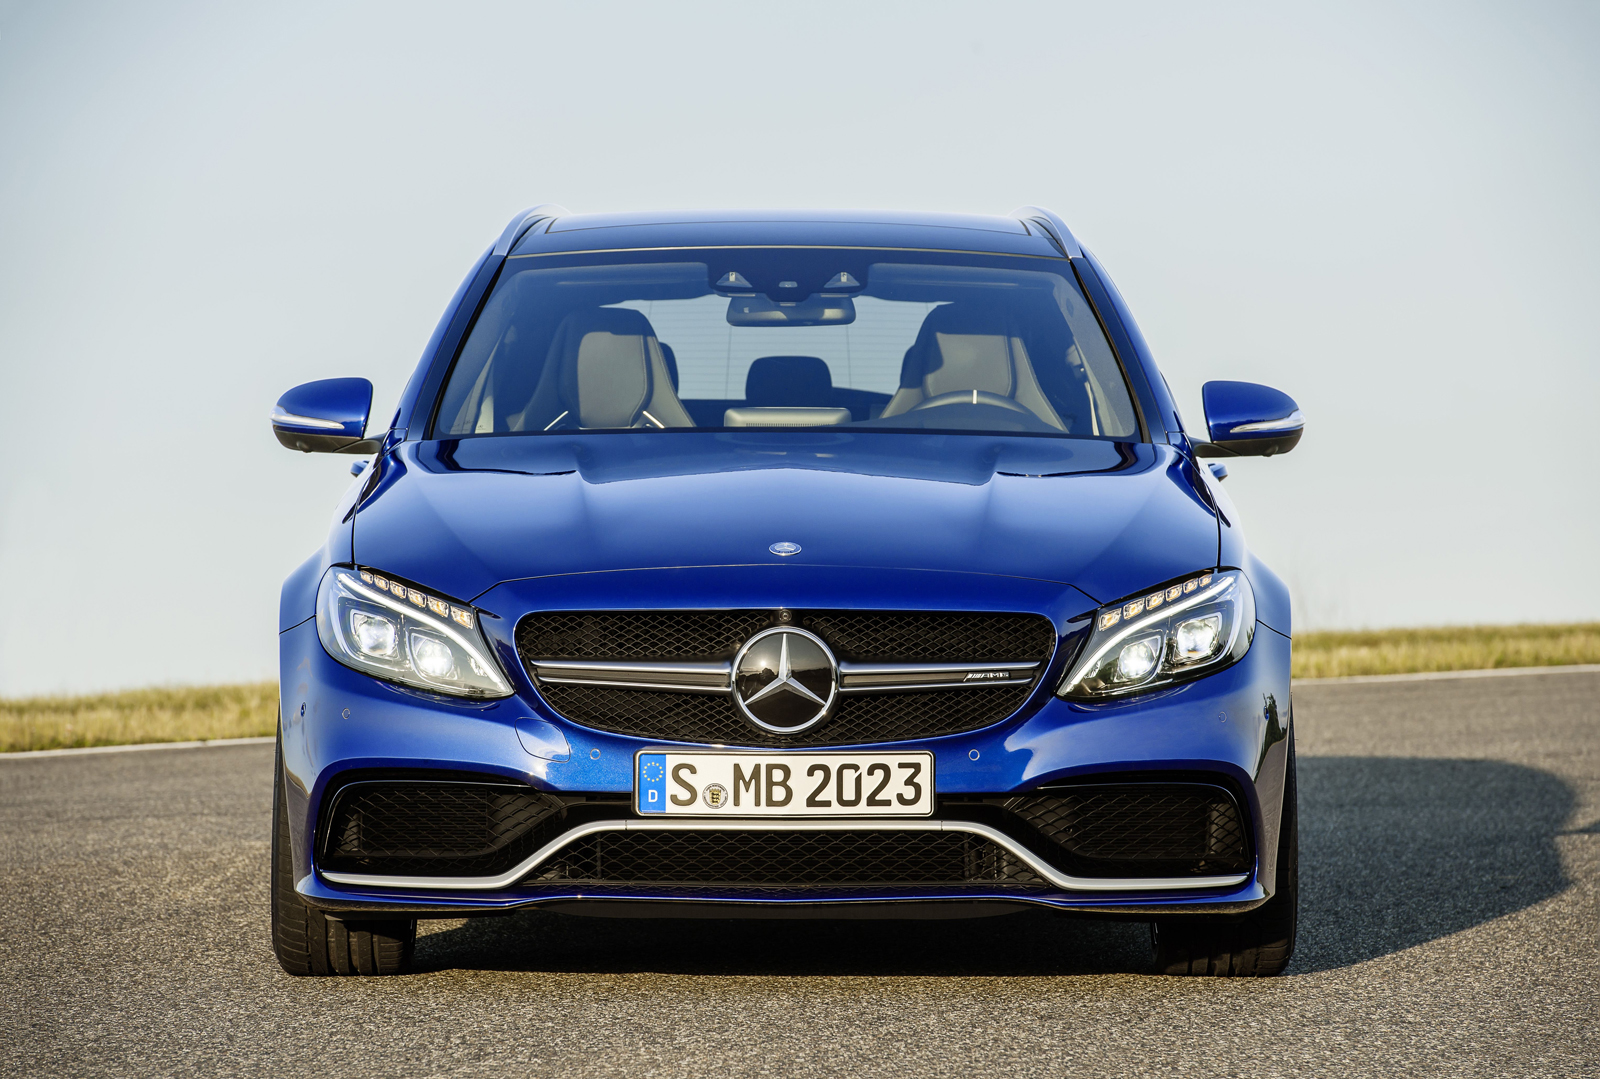 2015 mercedes amg c 63 and c 63 s shows itself updated gallery and tech specs motoroids. Black Bedroom Furniture Sets. Home Design Ideas